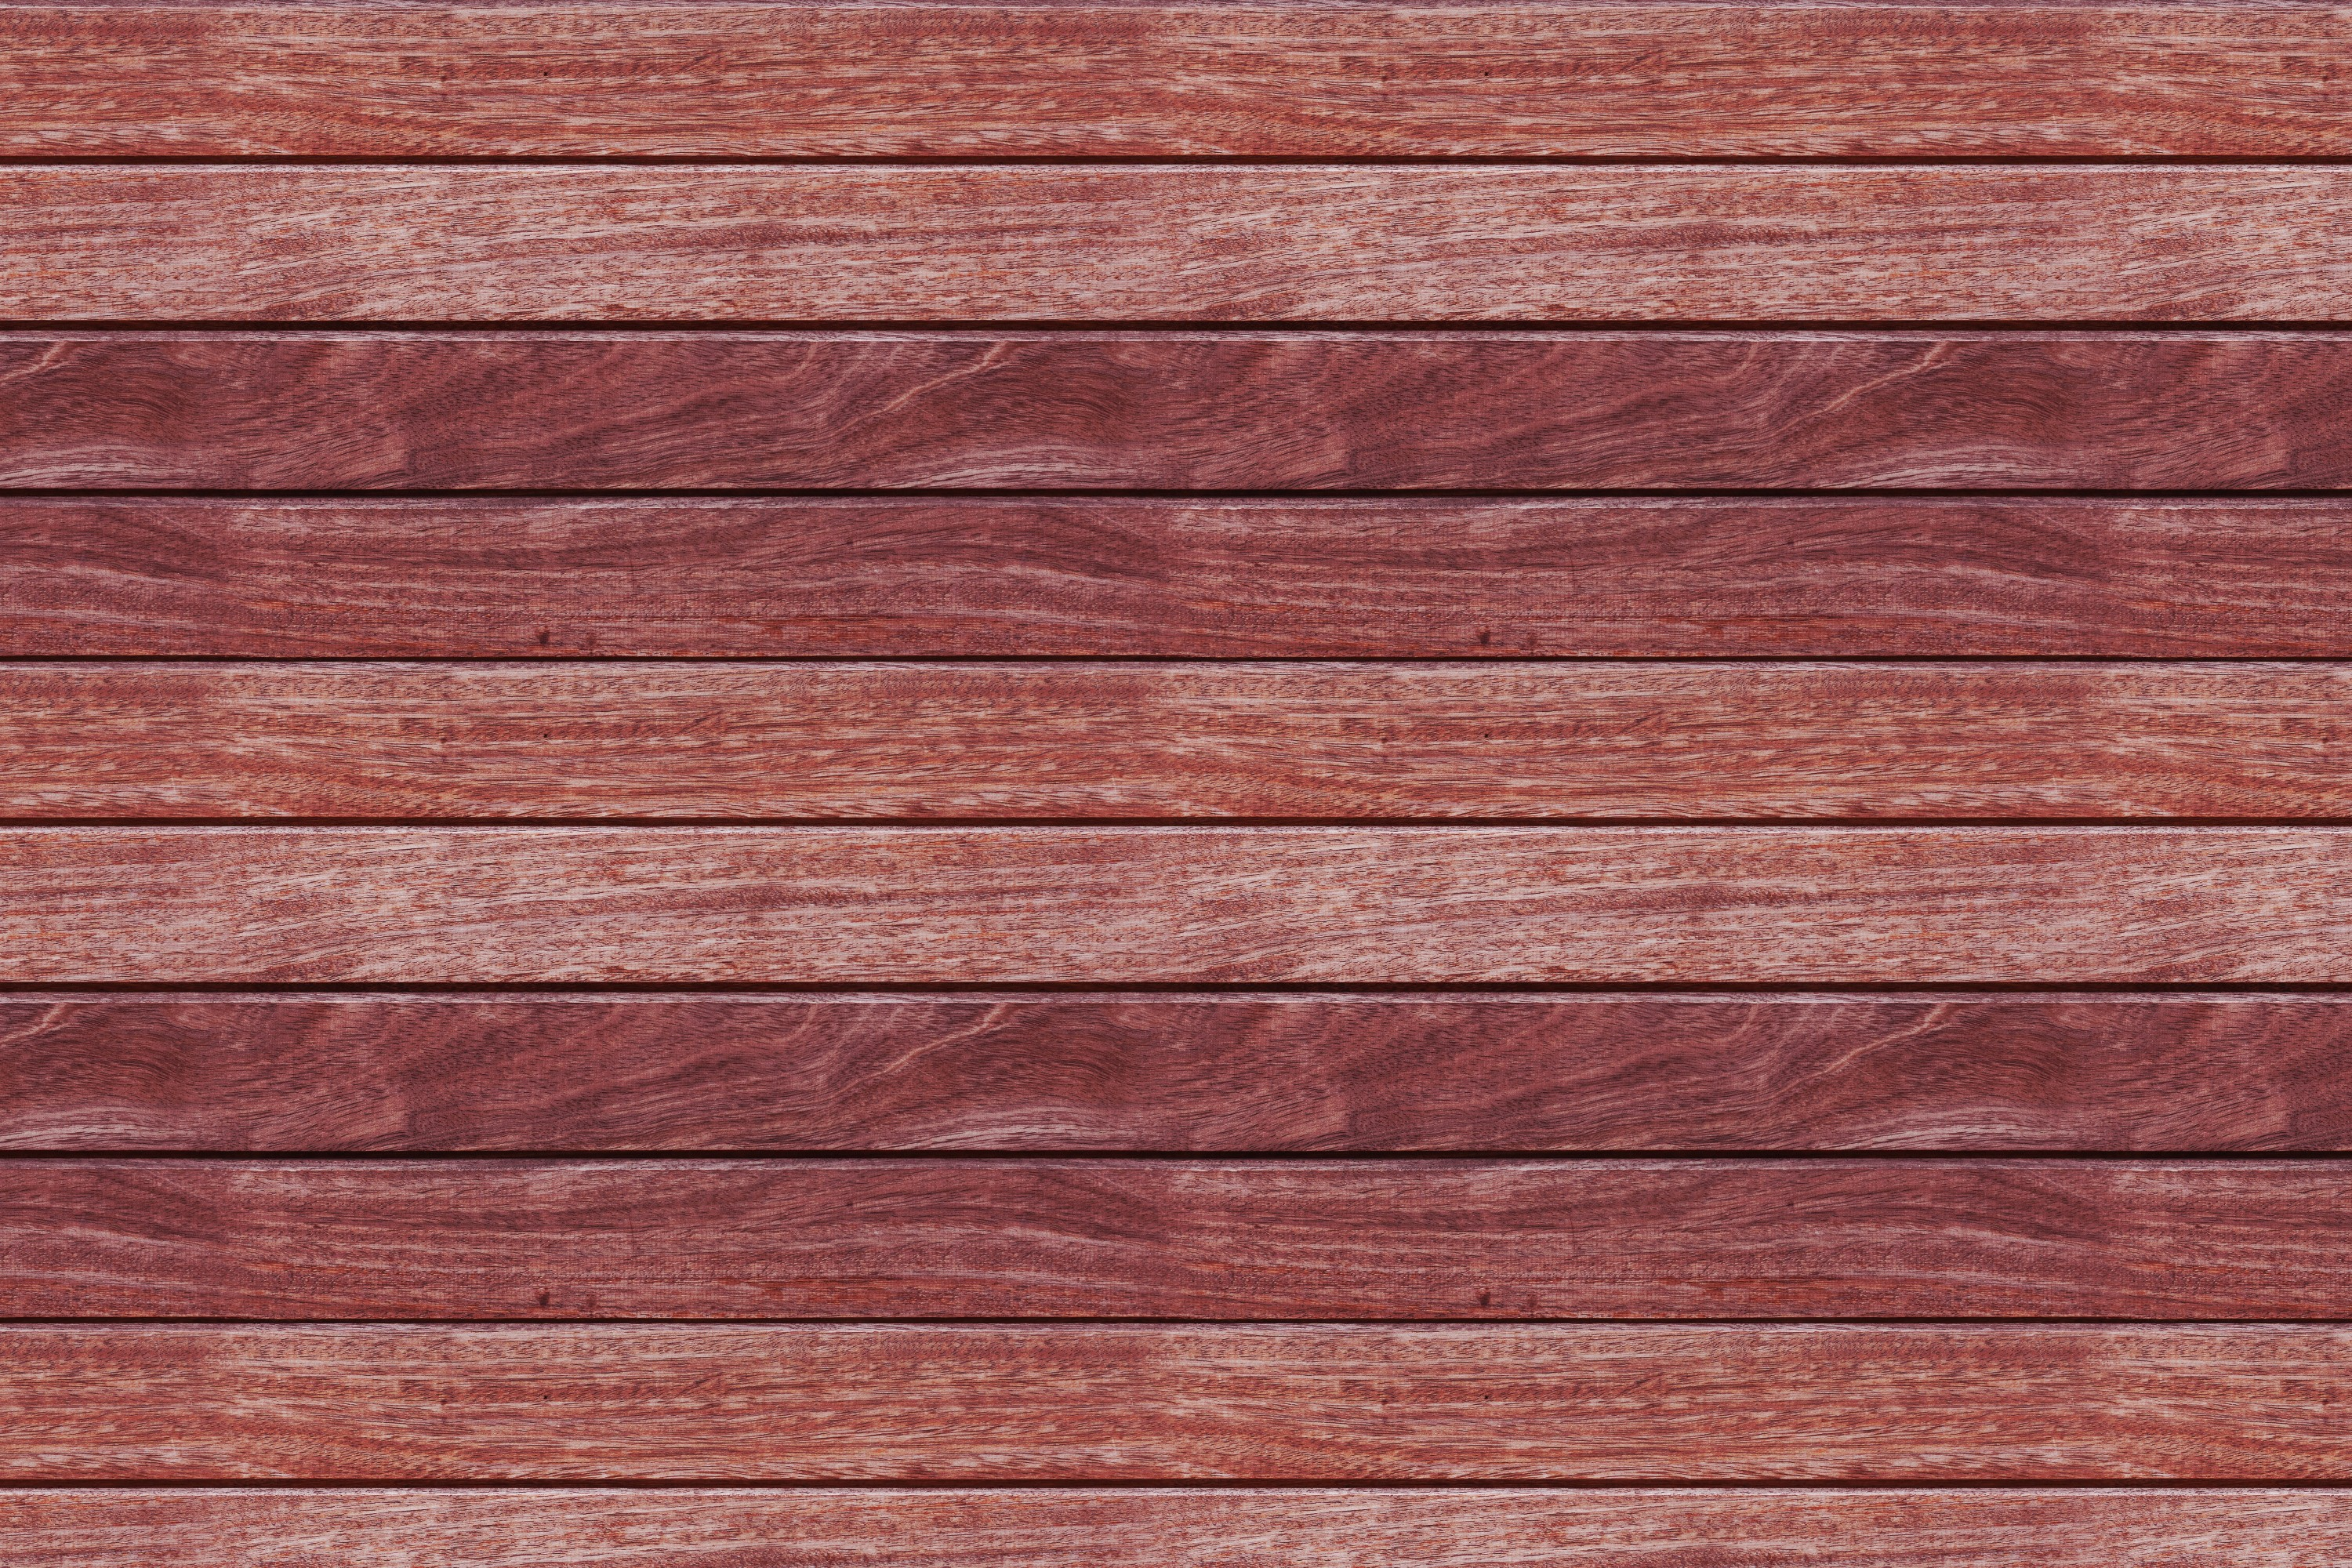 Wood plank background download free awesome wallpapers for Wood plank seamless texture